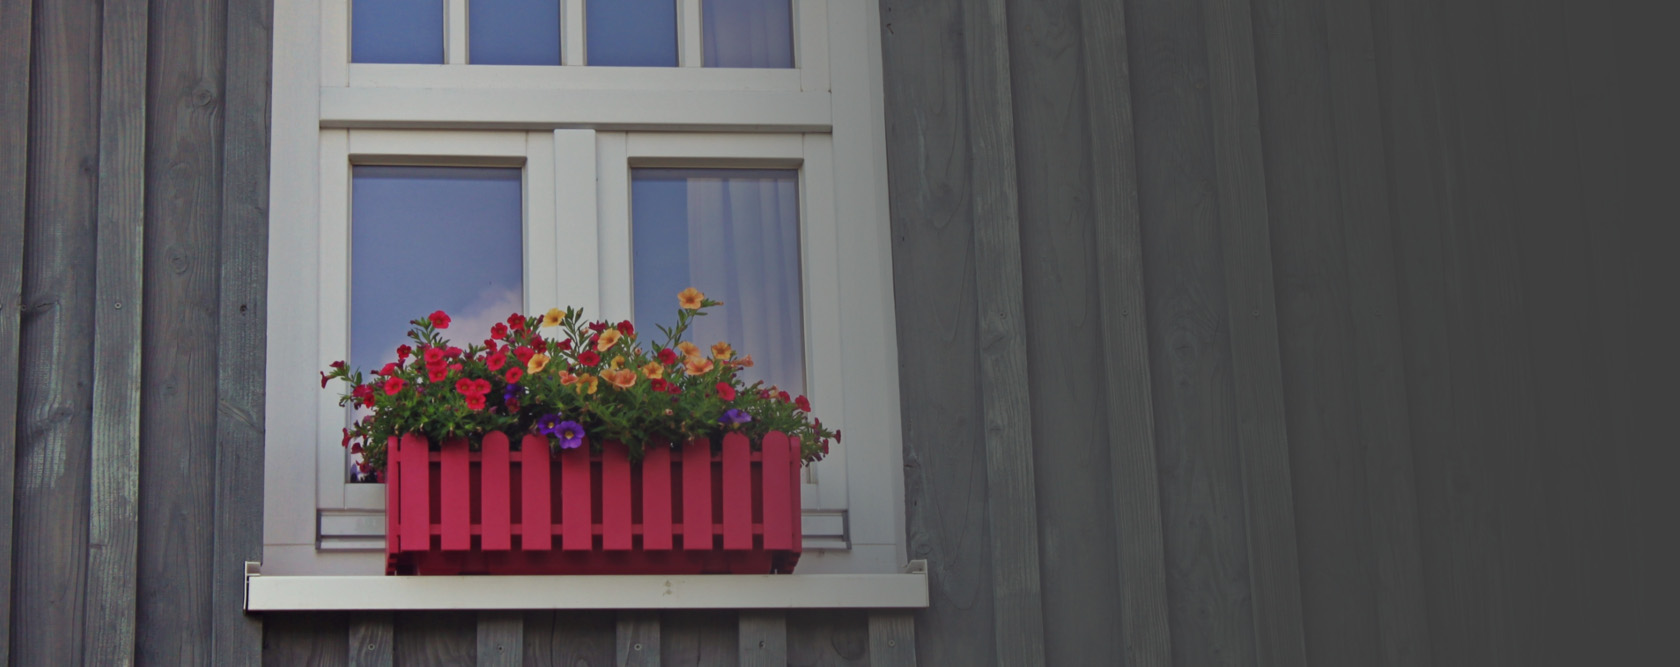 House window with pink wooden box of flowers.